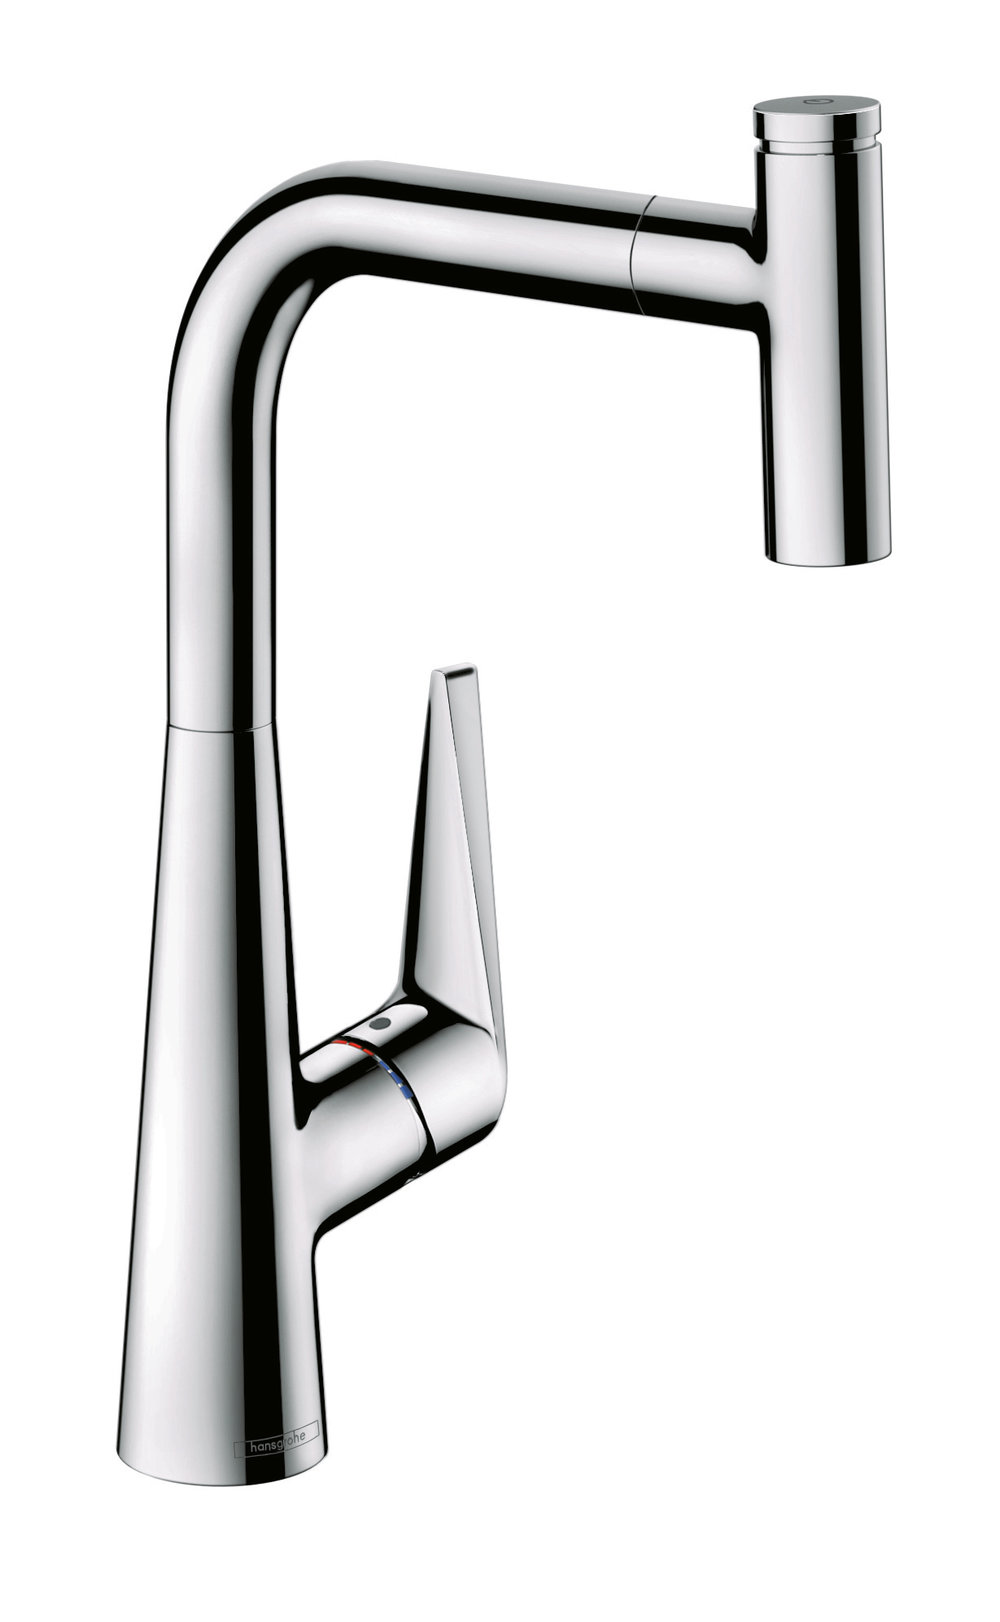 Hansgrohe S International Style Design On Tap